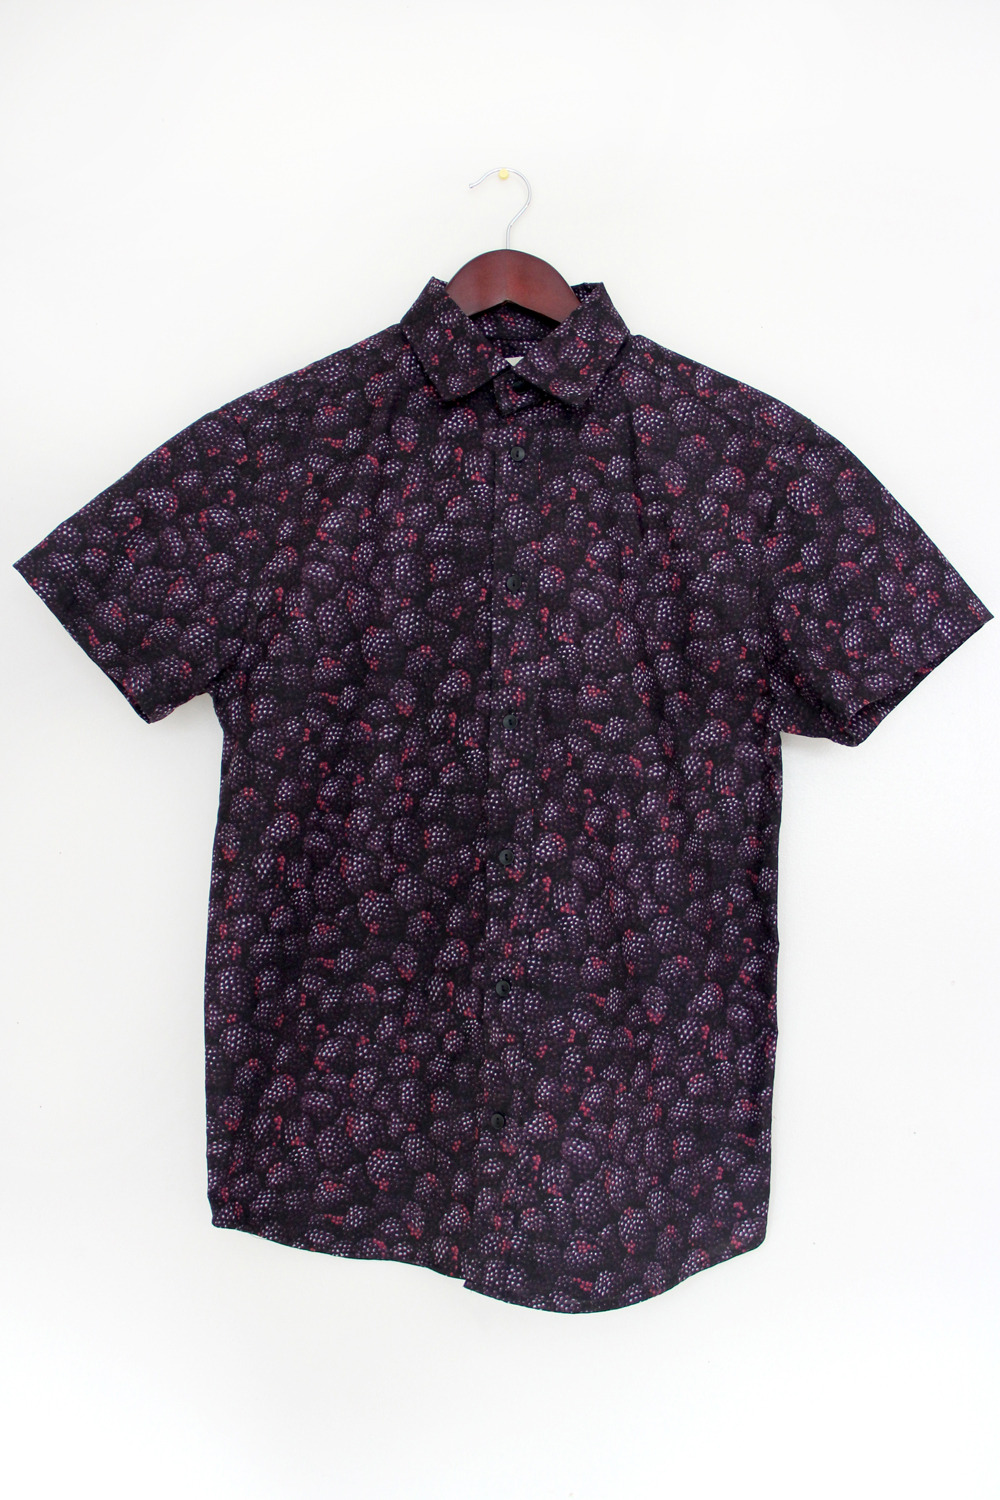 Blackberry Shirt http://shop.fffmenswear.com